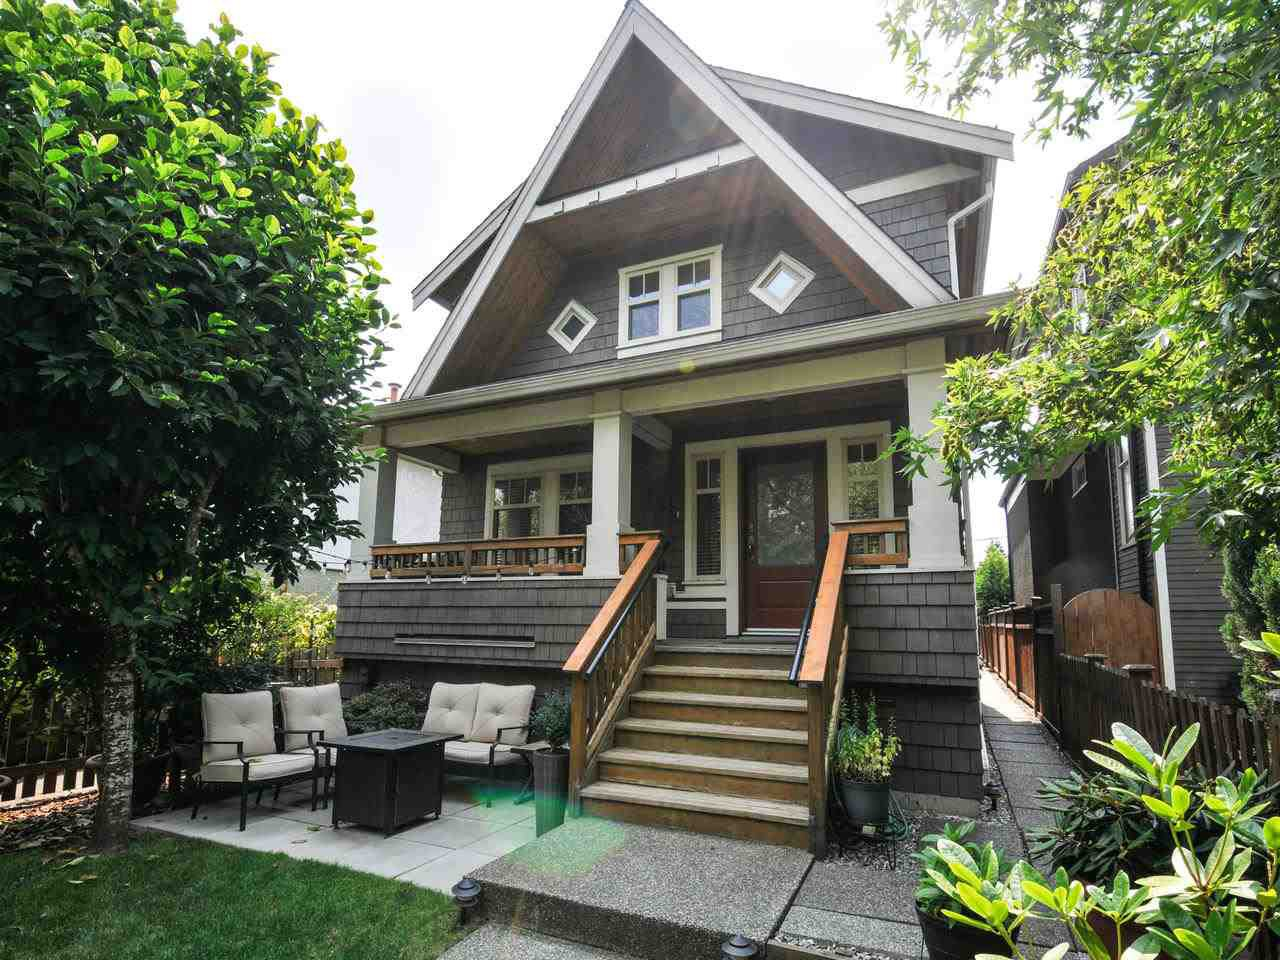 Main Photo: 1252 E 11TH Avenue in Vancouver: Mount Pleasant VE House 1/2 Duplex for sale (Vancouver East)  : MLS®# R2317312